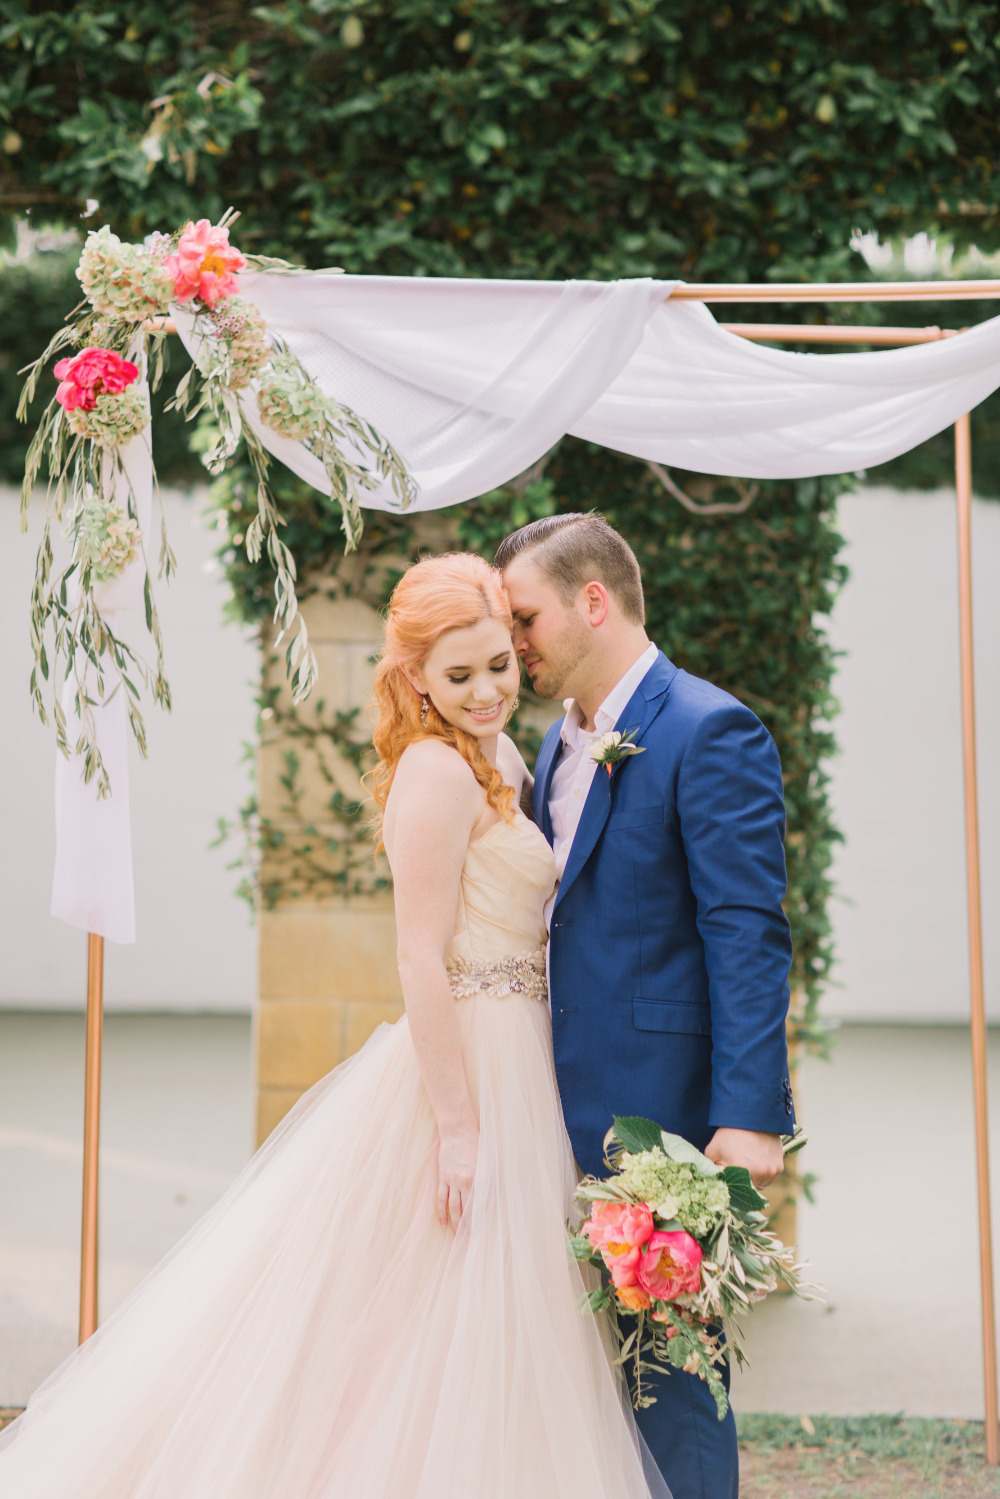 wedding ceremony draped backdrop with flowers